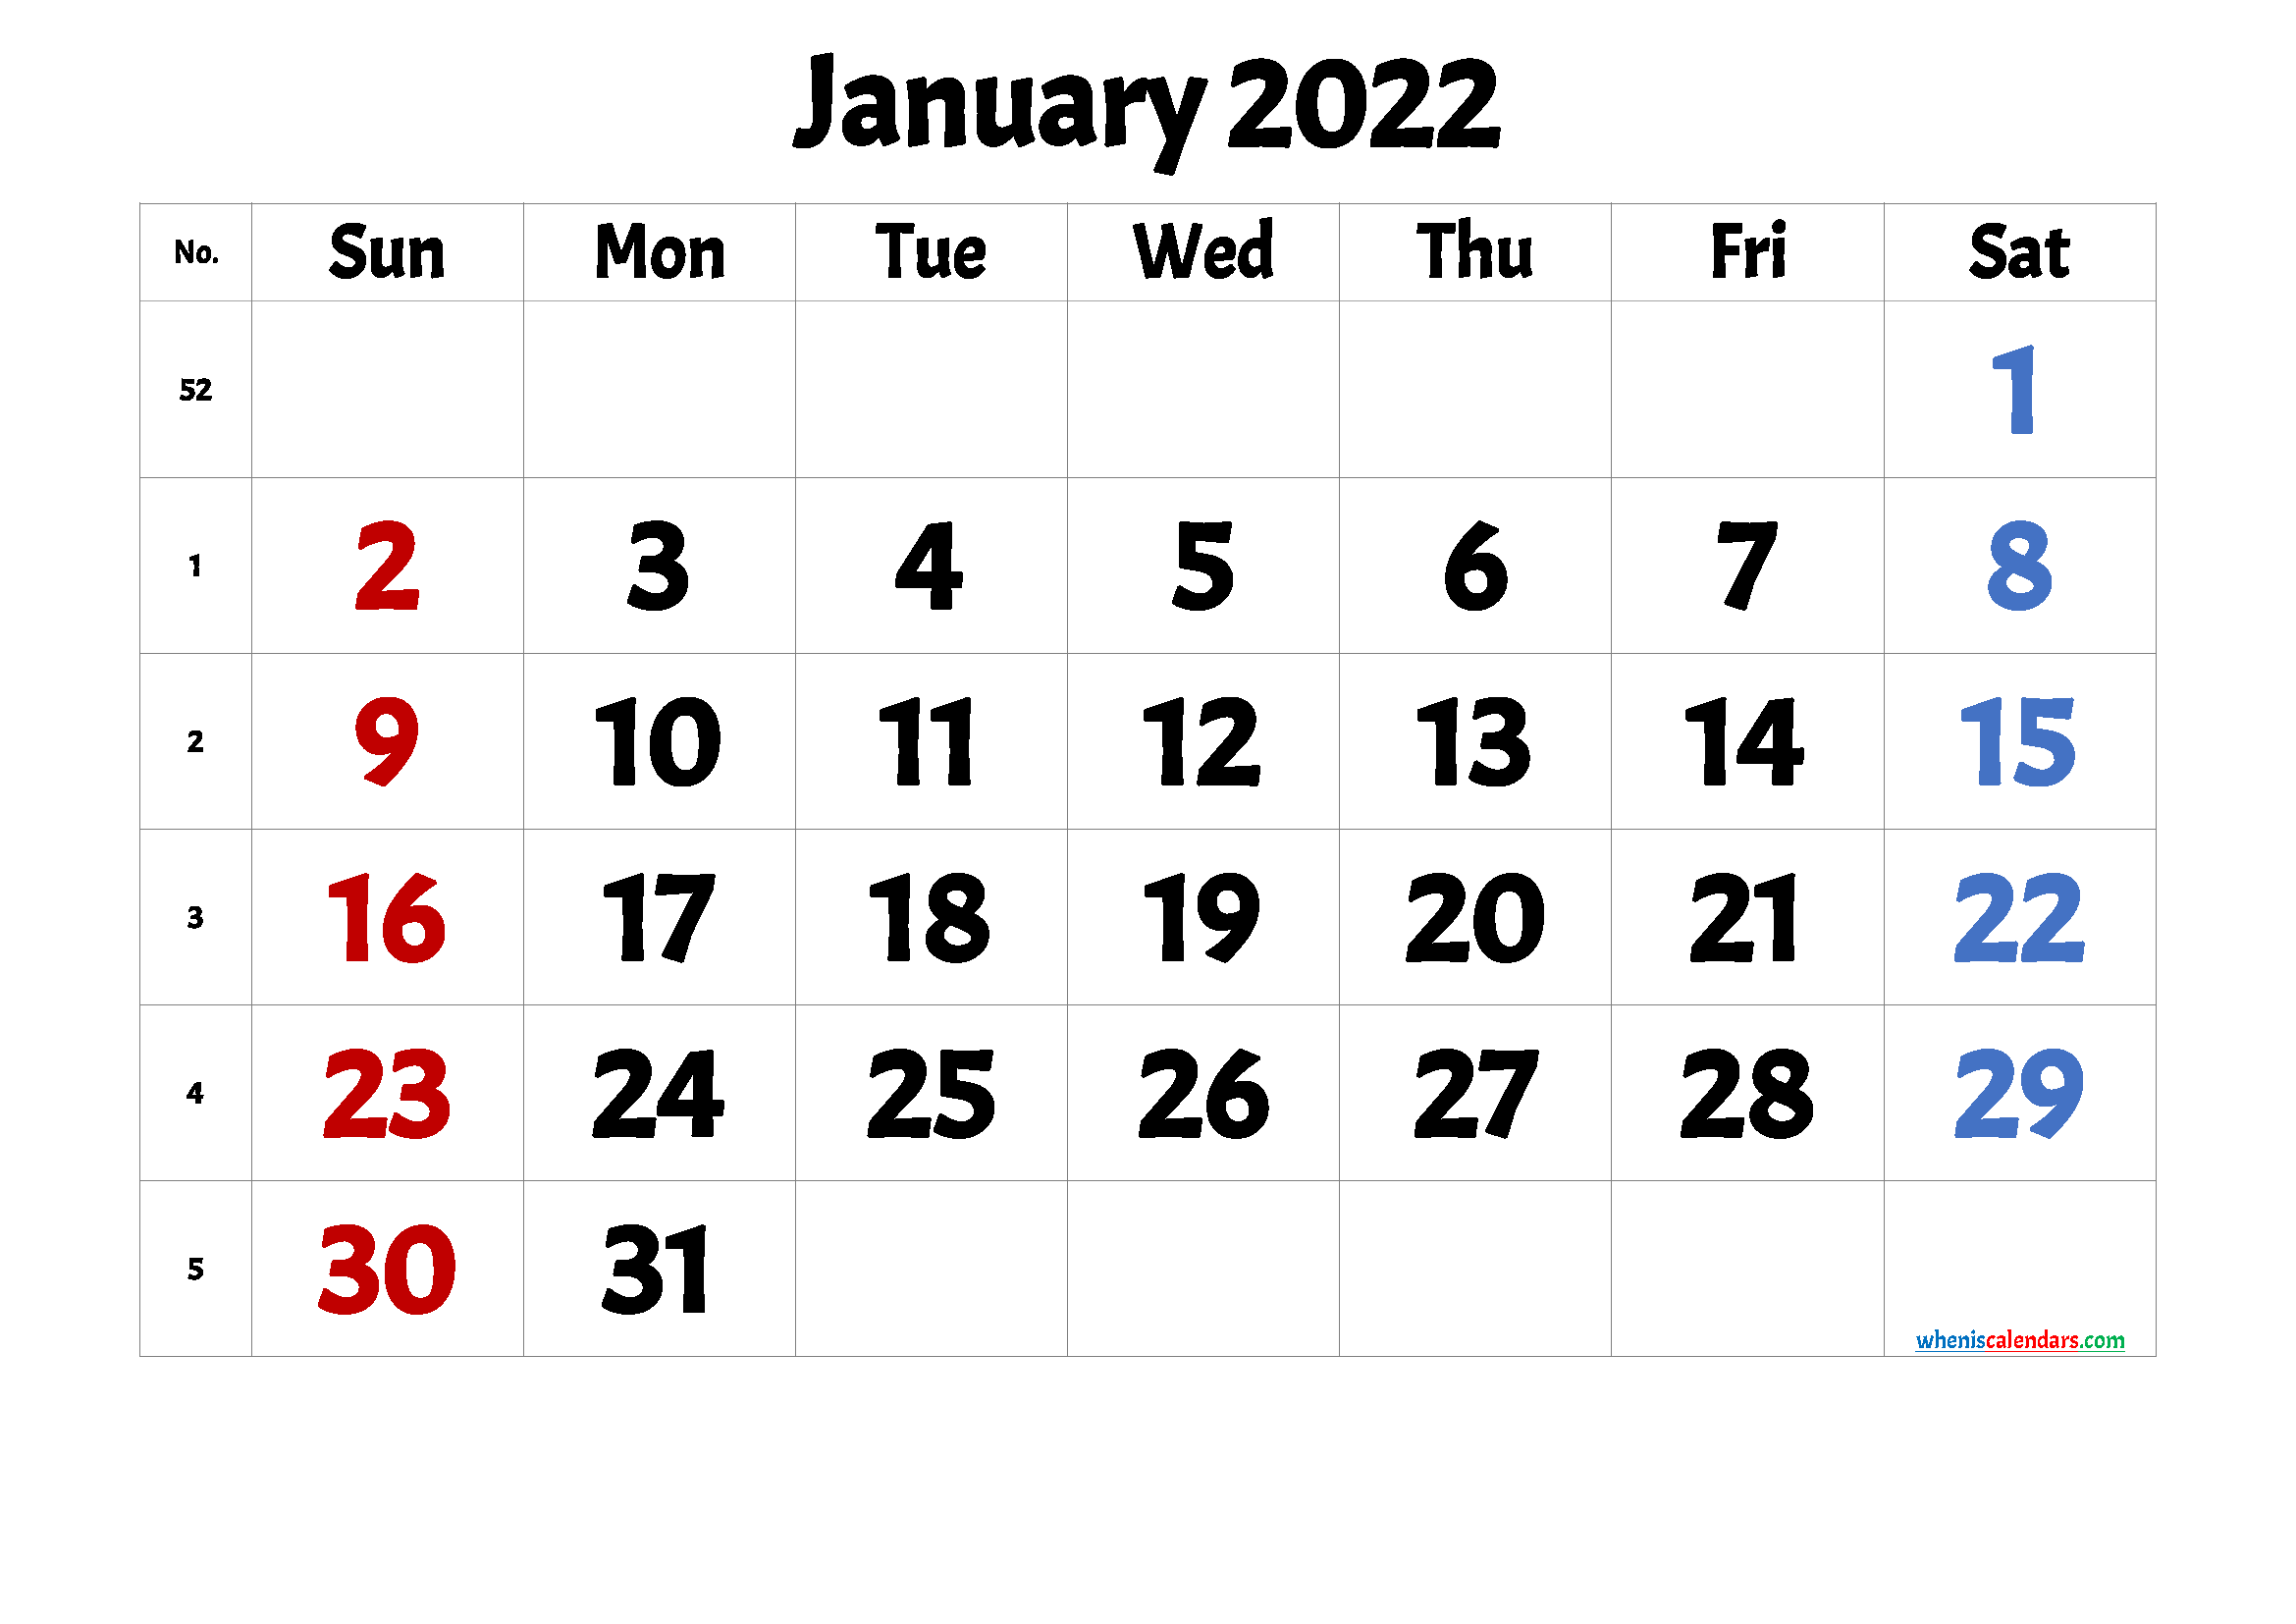 Free January 2022 Calendar.Free January 2022 Calendar Printable 1 Month 1 Page 2021 Free Printable